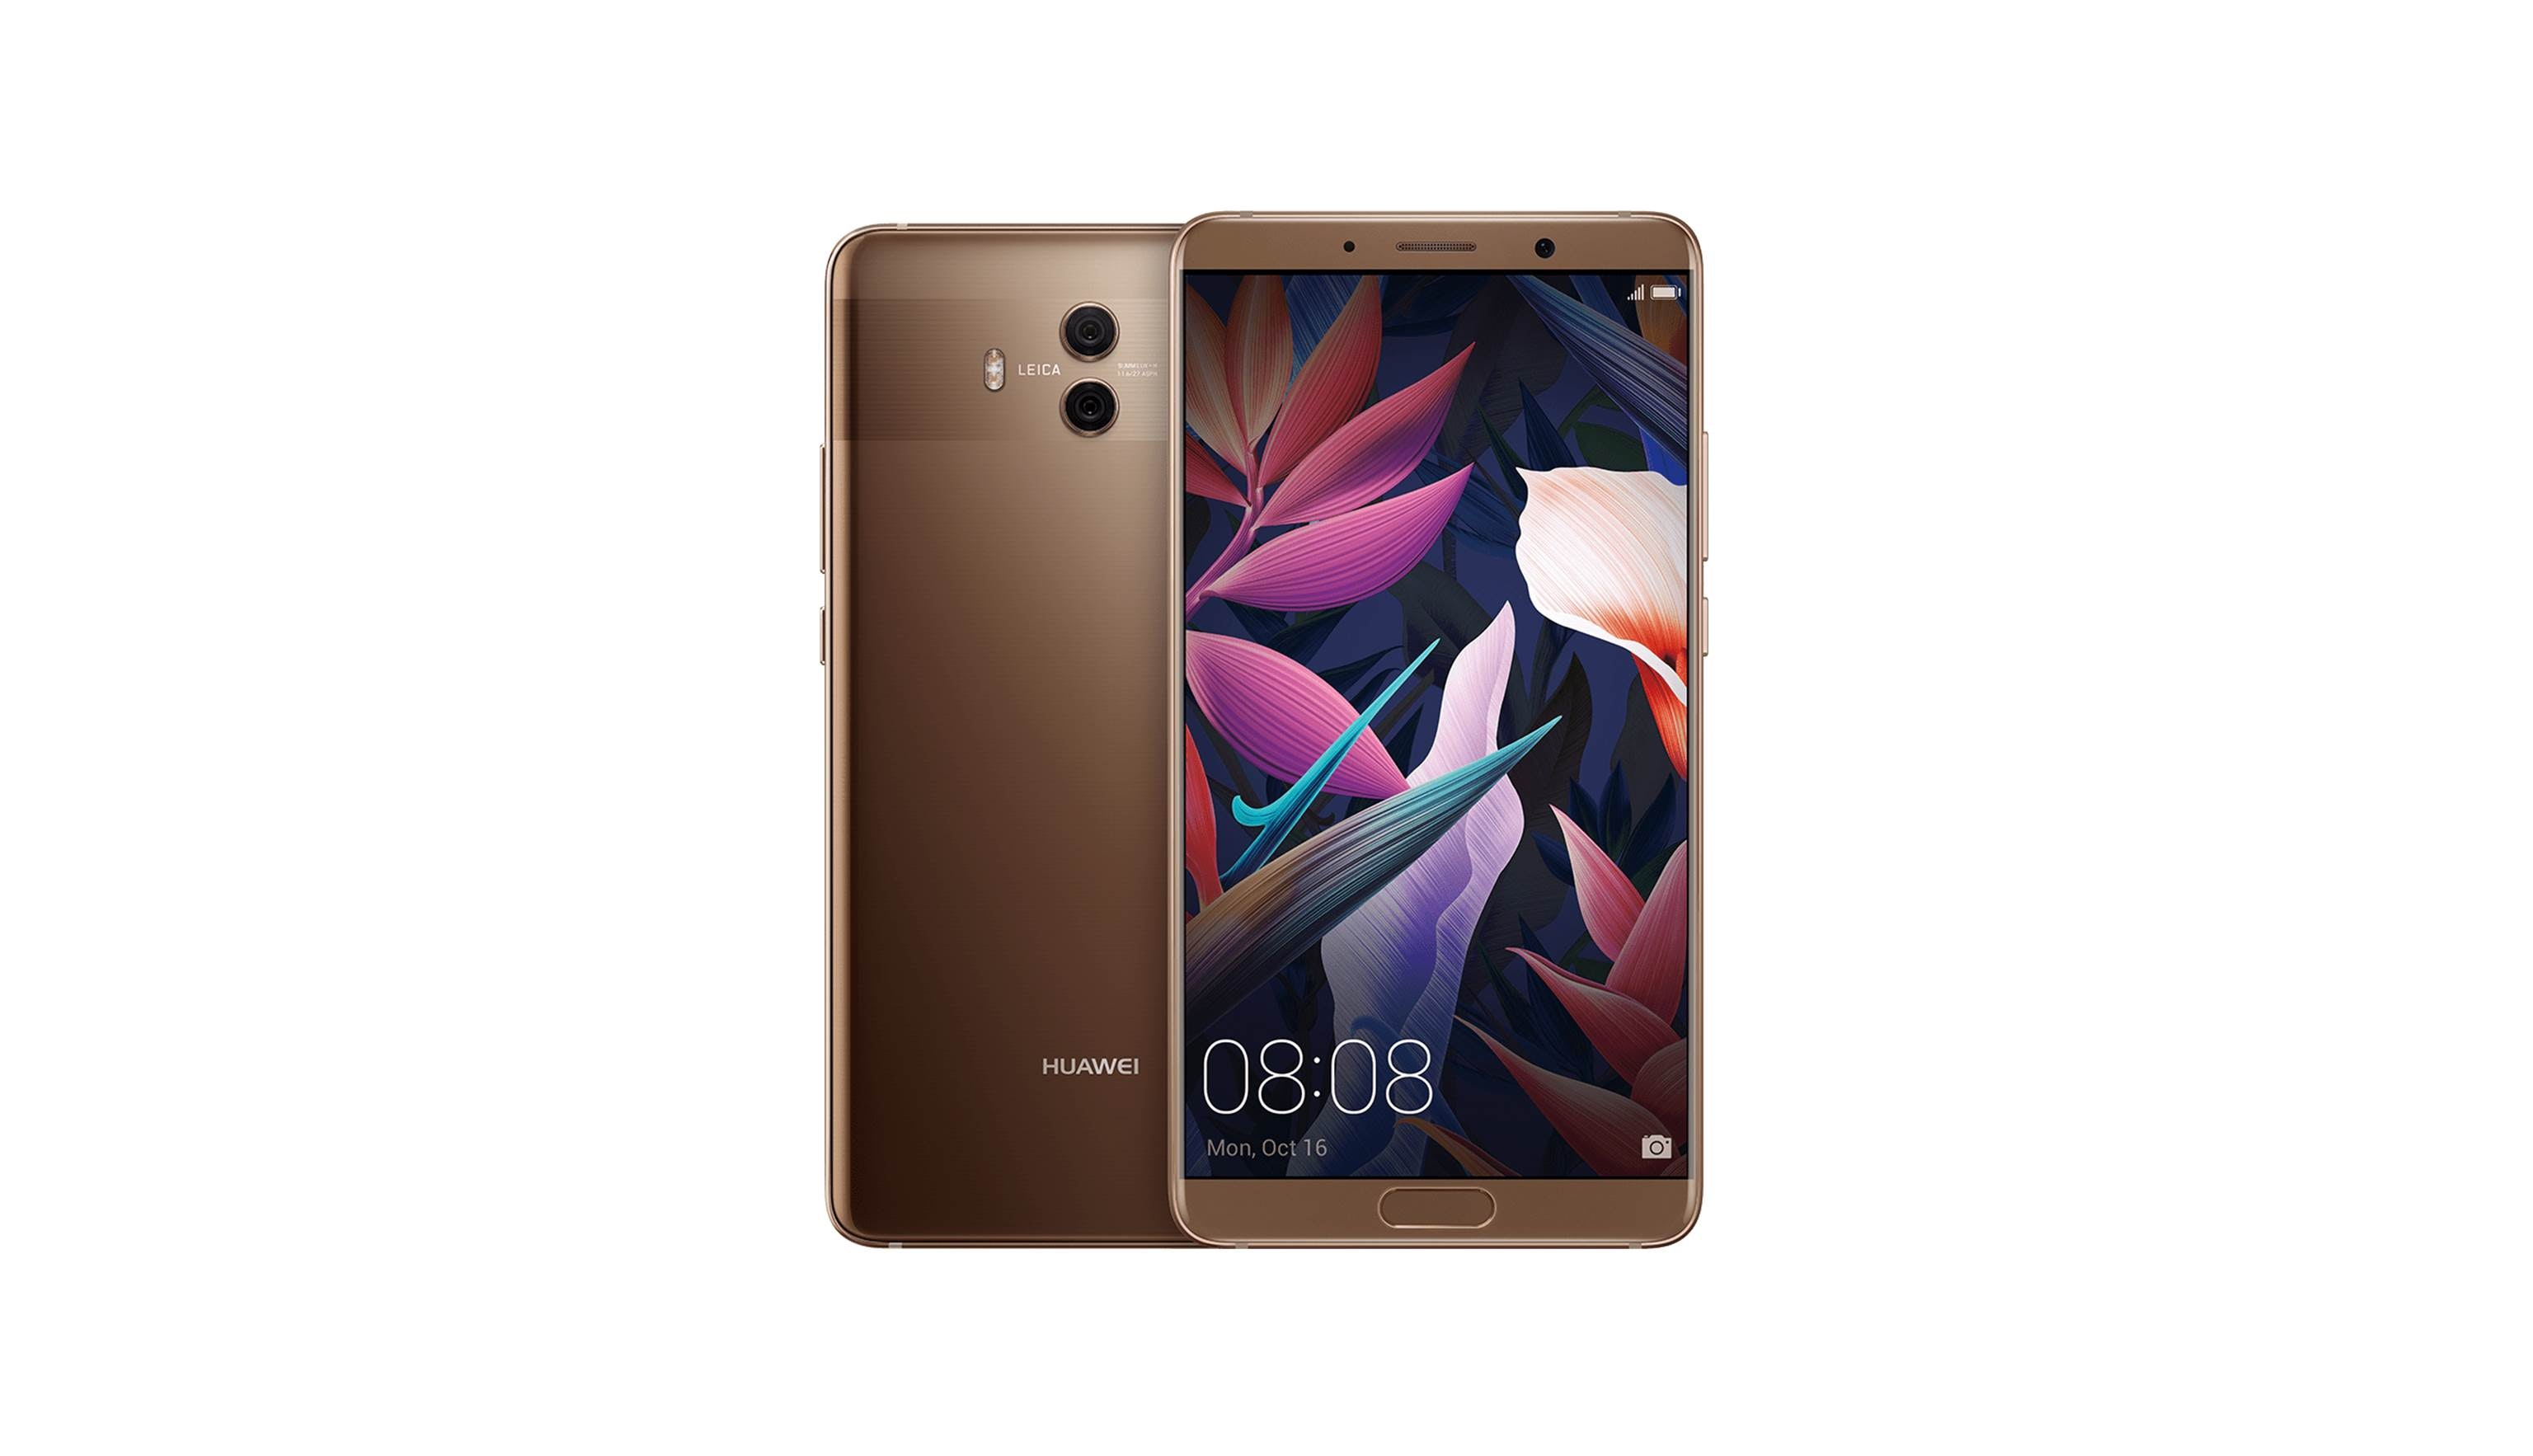 Huawei Mate 10 (2017) - Mocha Brown (1)